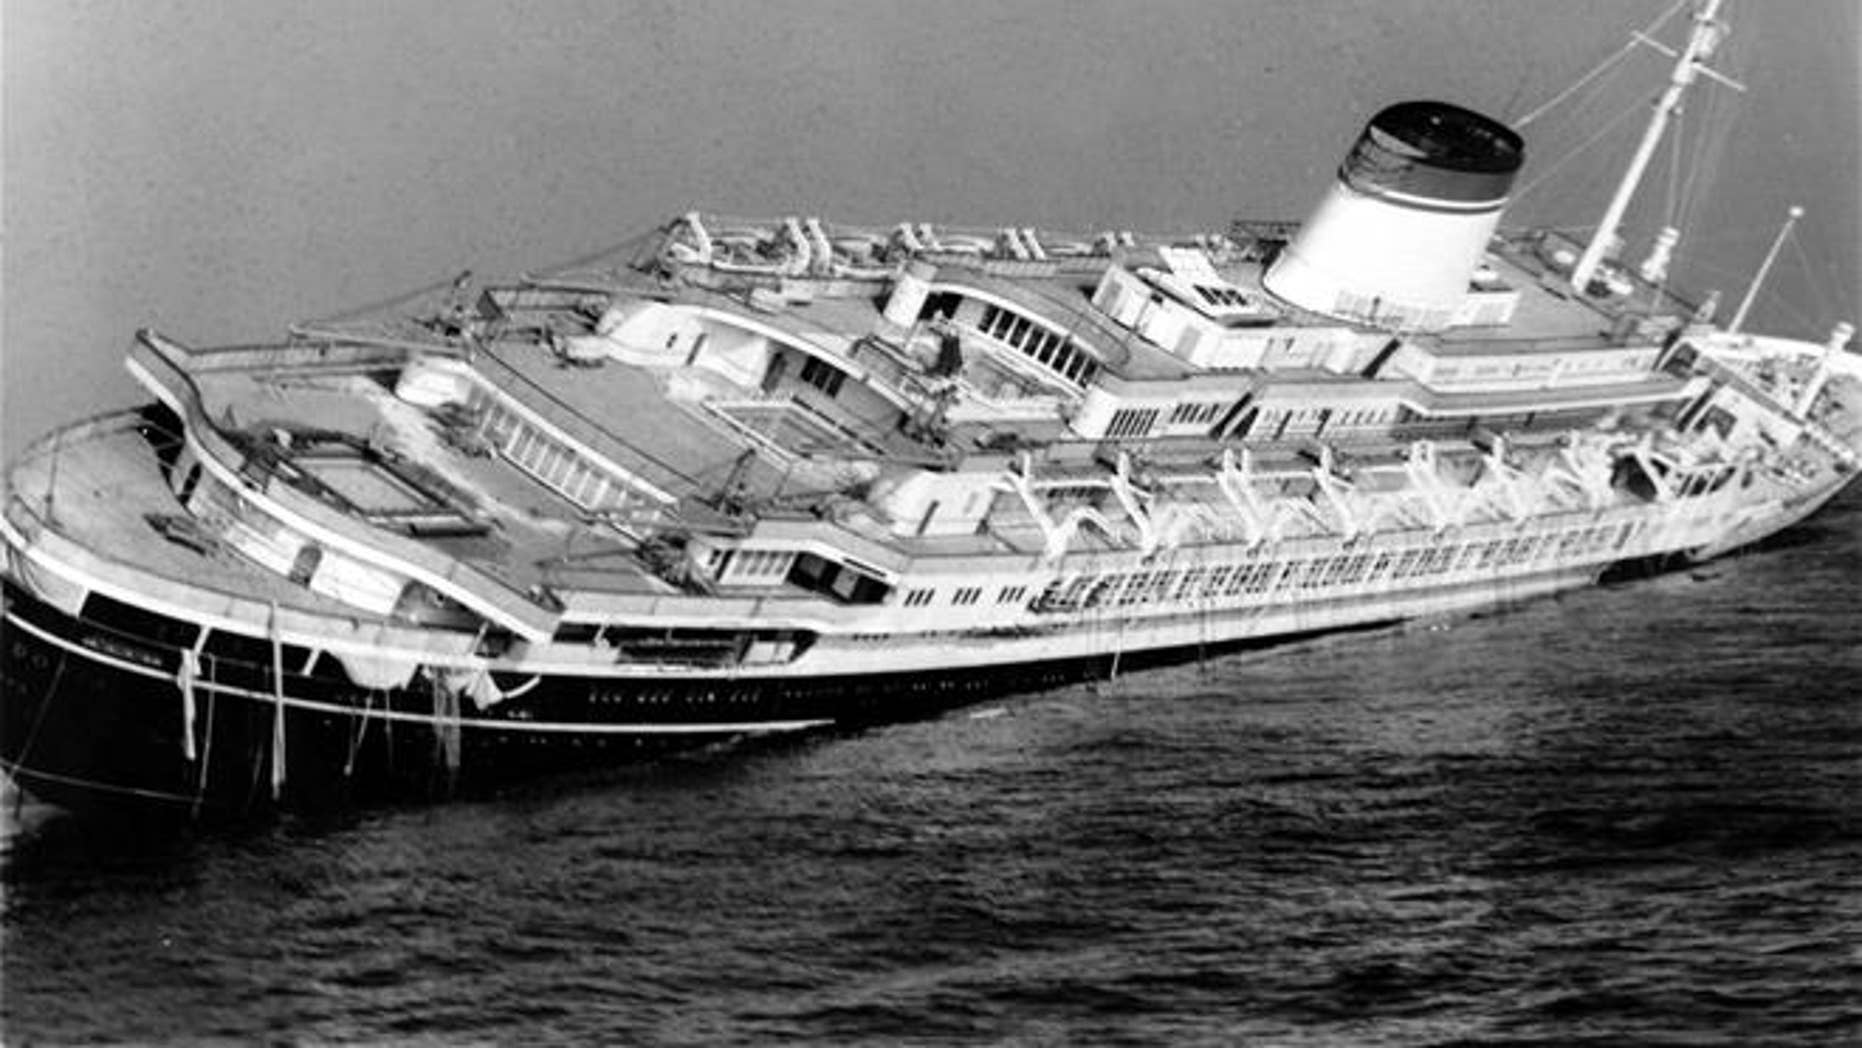 The Andrea Doria keels far over to starboard before sinking to the bottom of the Atlantic in 1956.